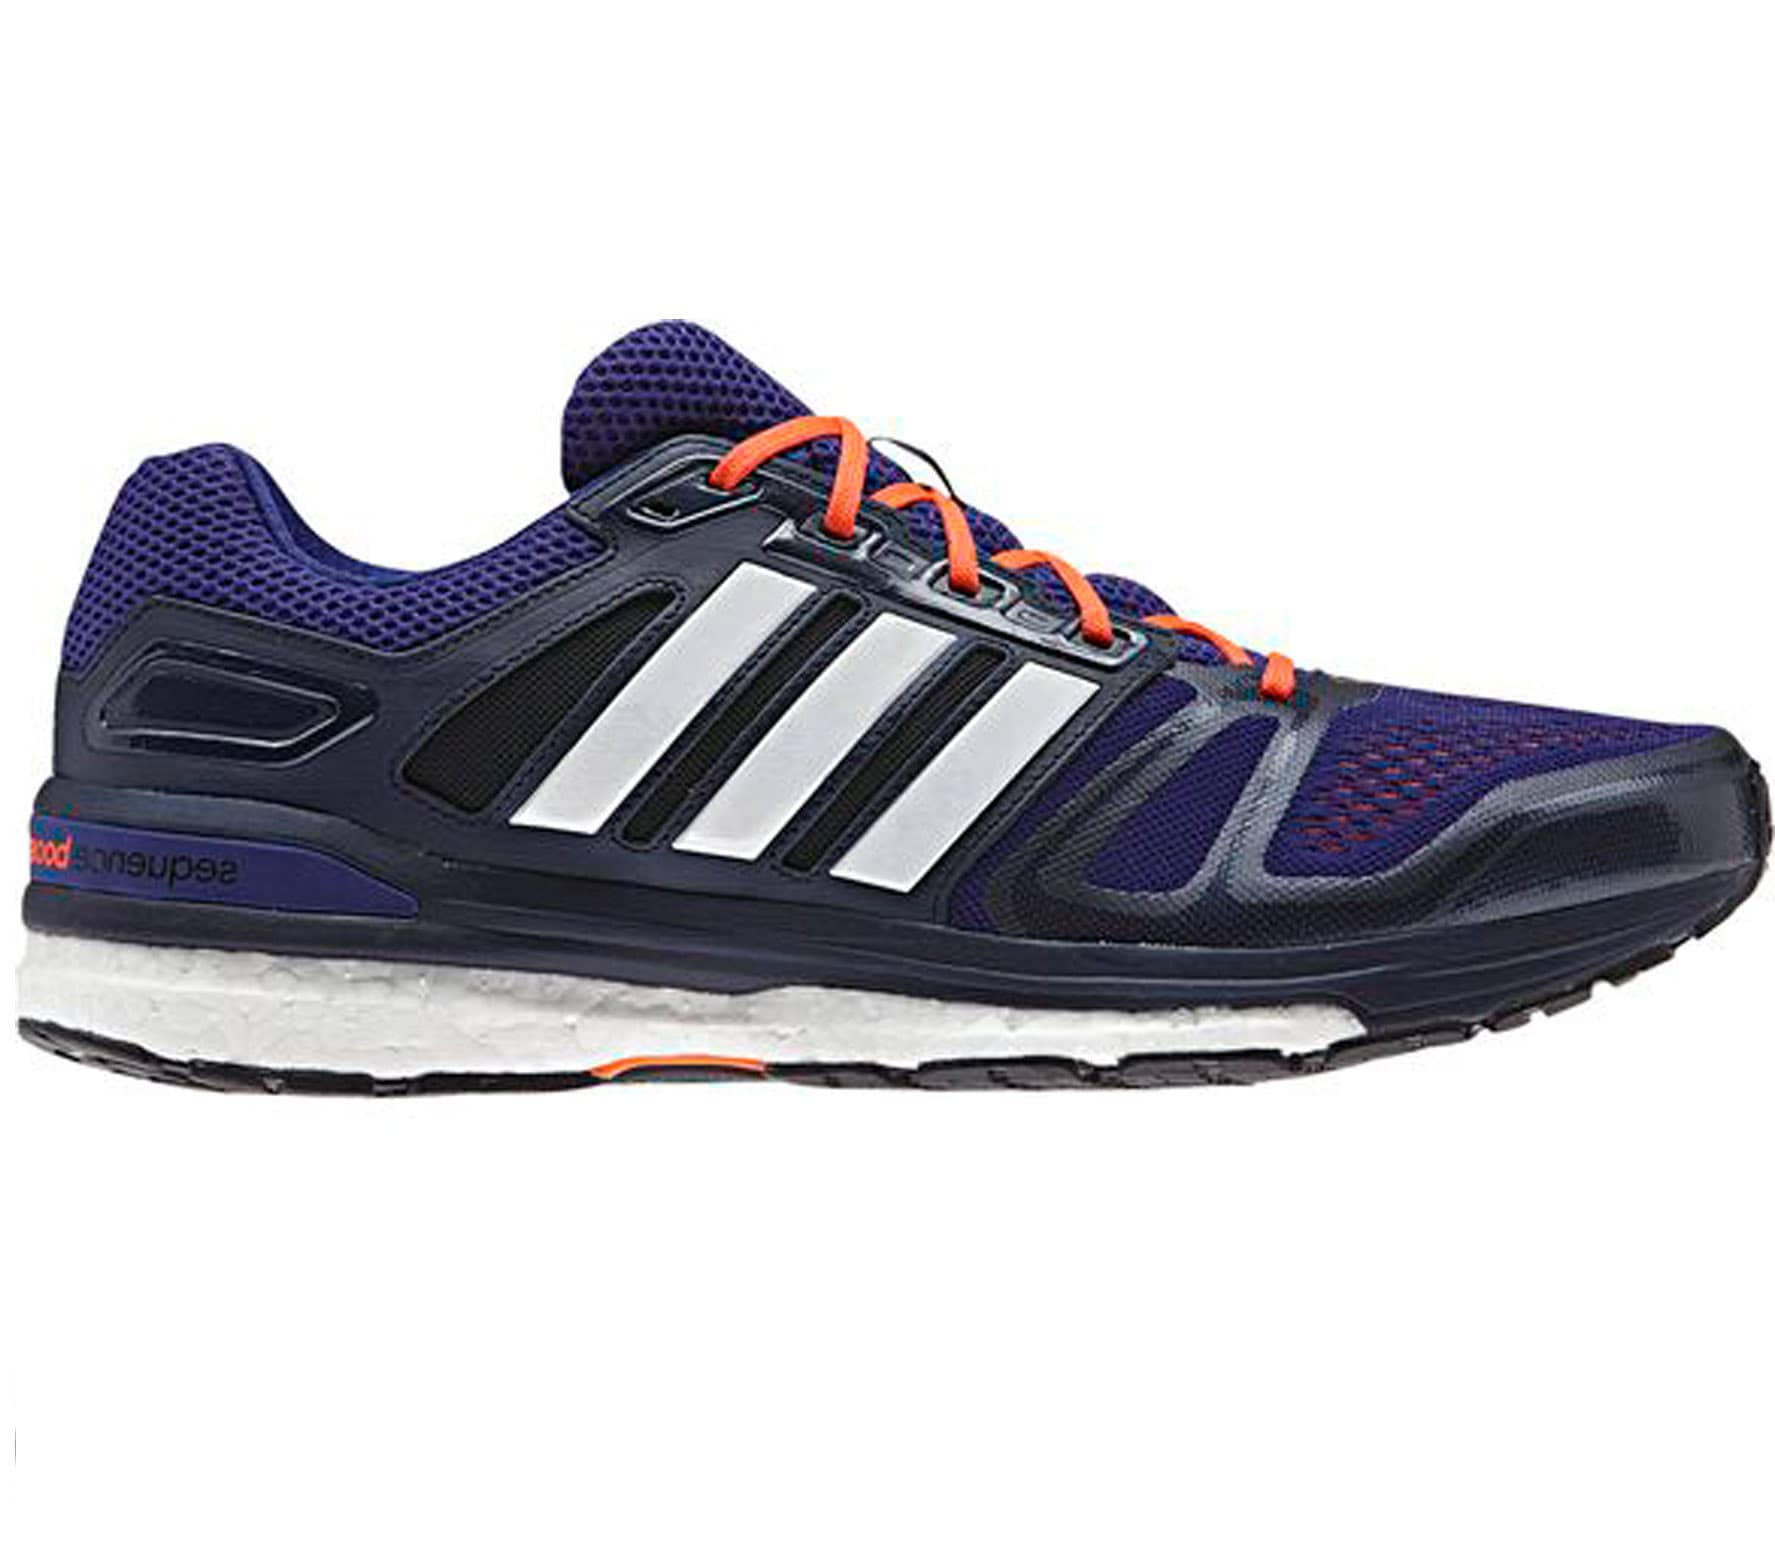 76a0e3e9ec52f Adidas - Supernova Sequence Boots 7 men s running shoes (violet ...